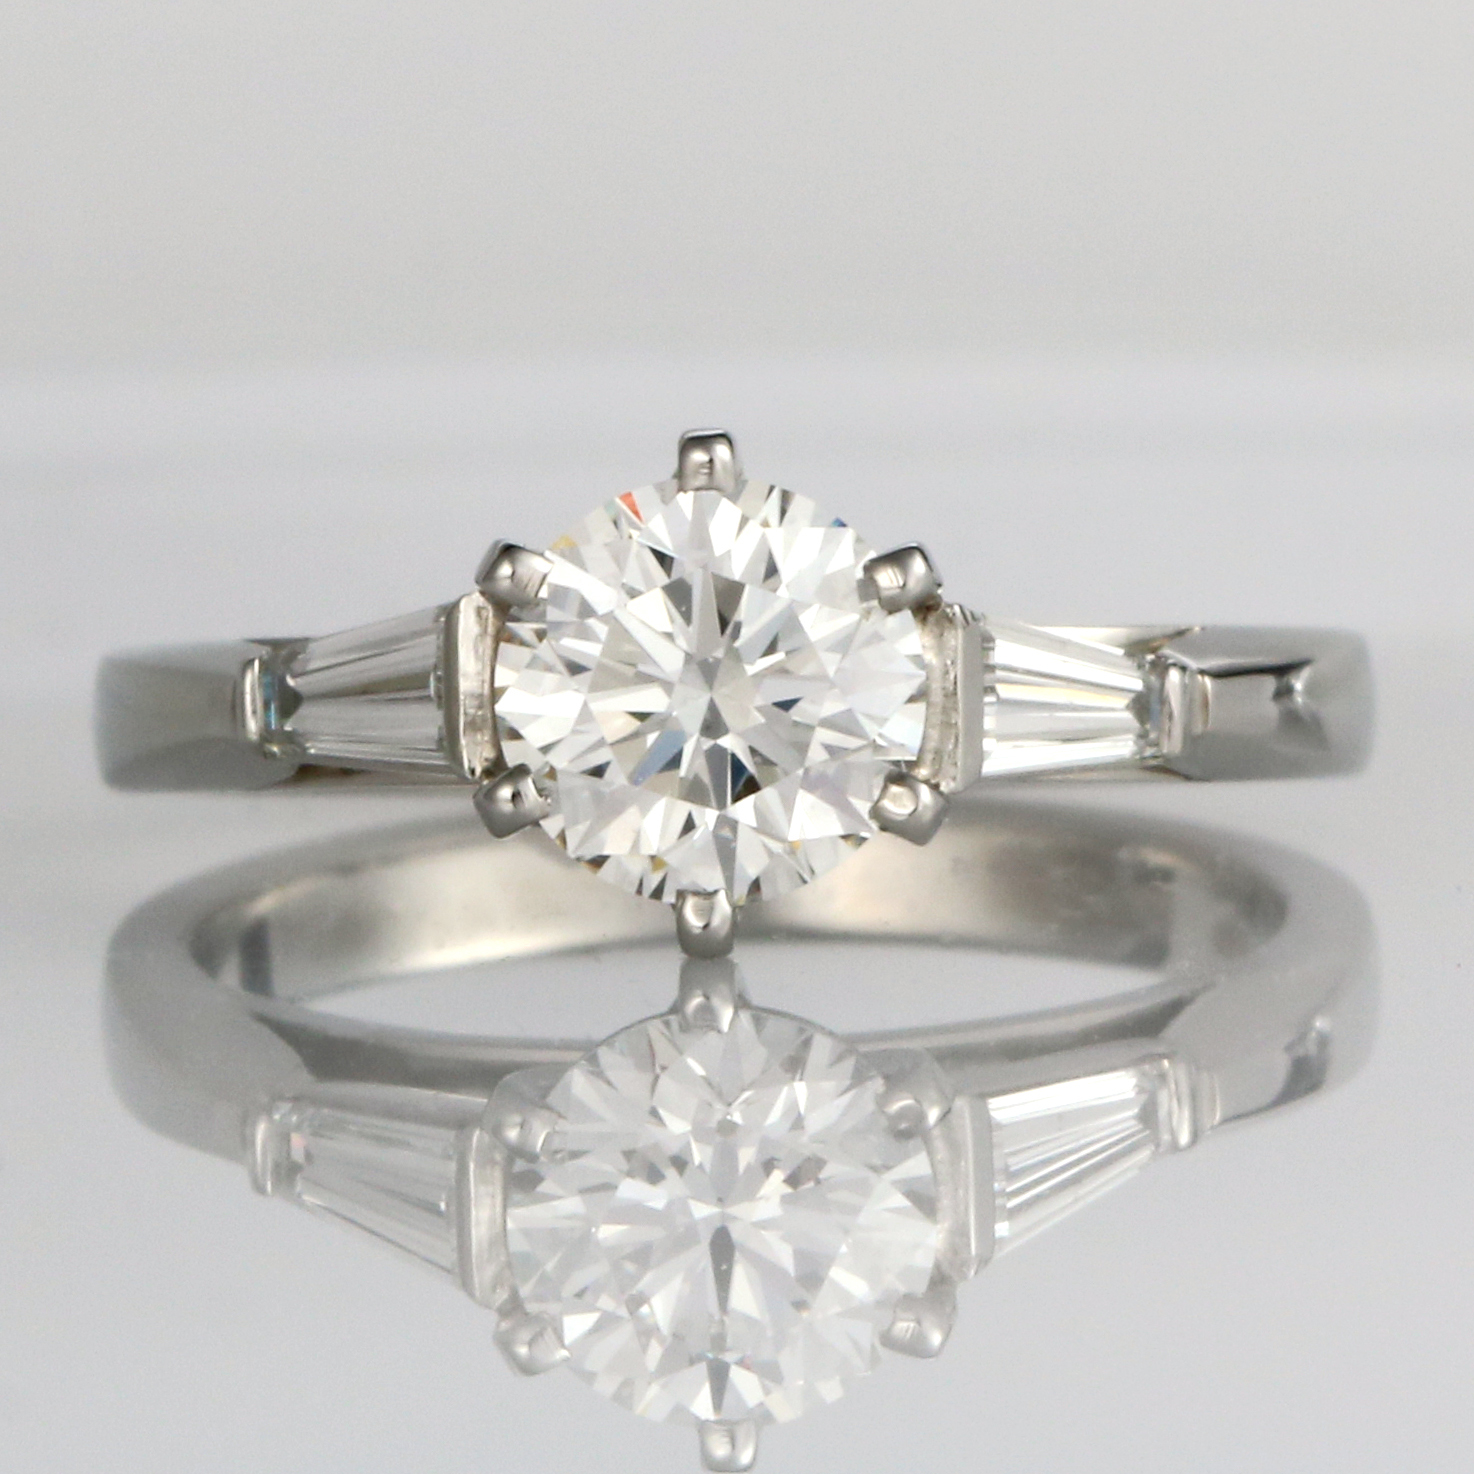 Handmade Platinum and Diamond Engagement ring